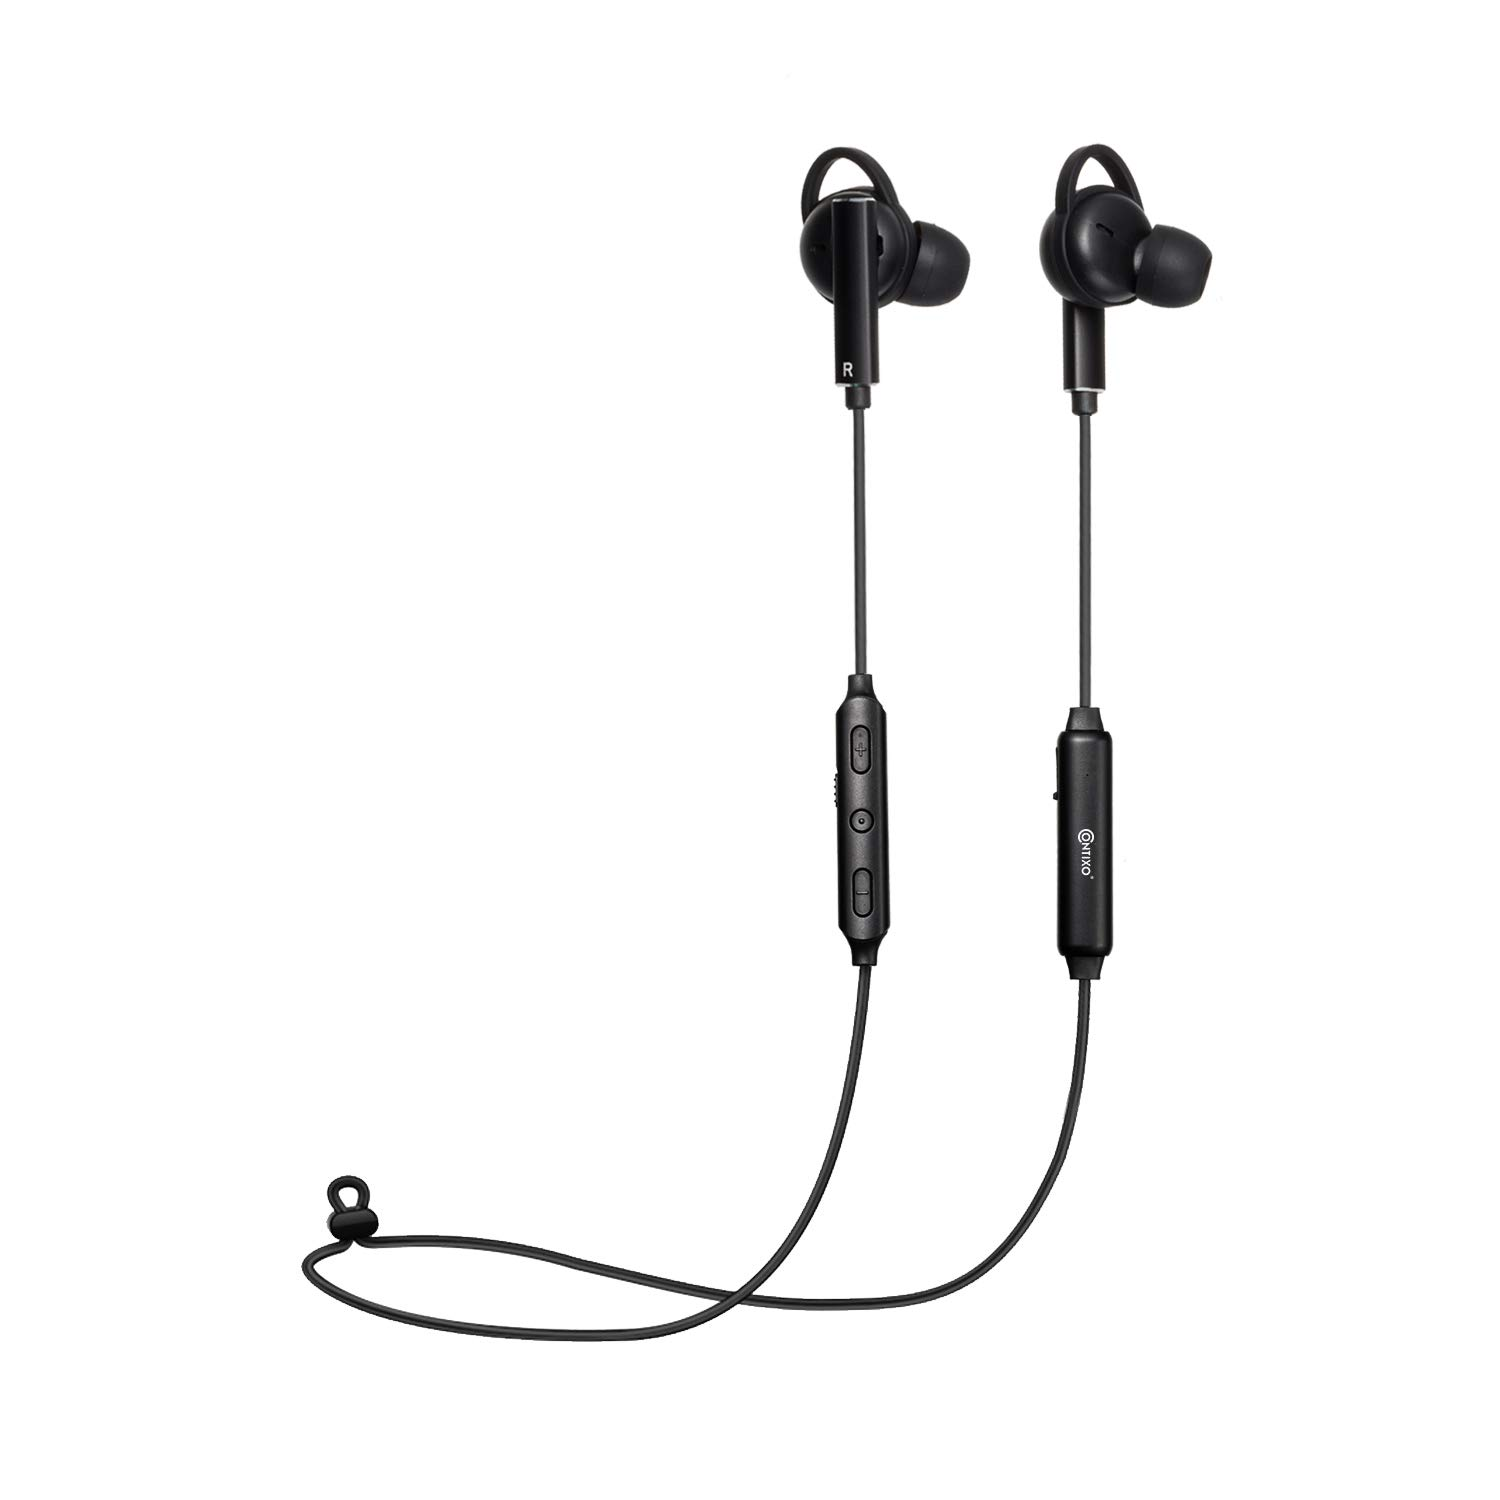 Contixo B3 Active Noise Cancelling Headphones Bluetooth Headphones Wireless Headphones Stereo Earbuds with Mic, Bluetooth 4.2 Sports Neckband Headset - Black